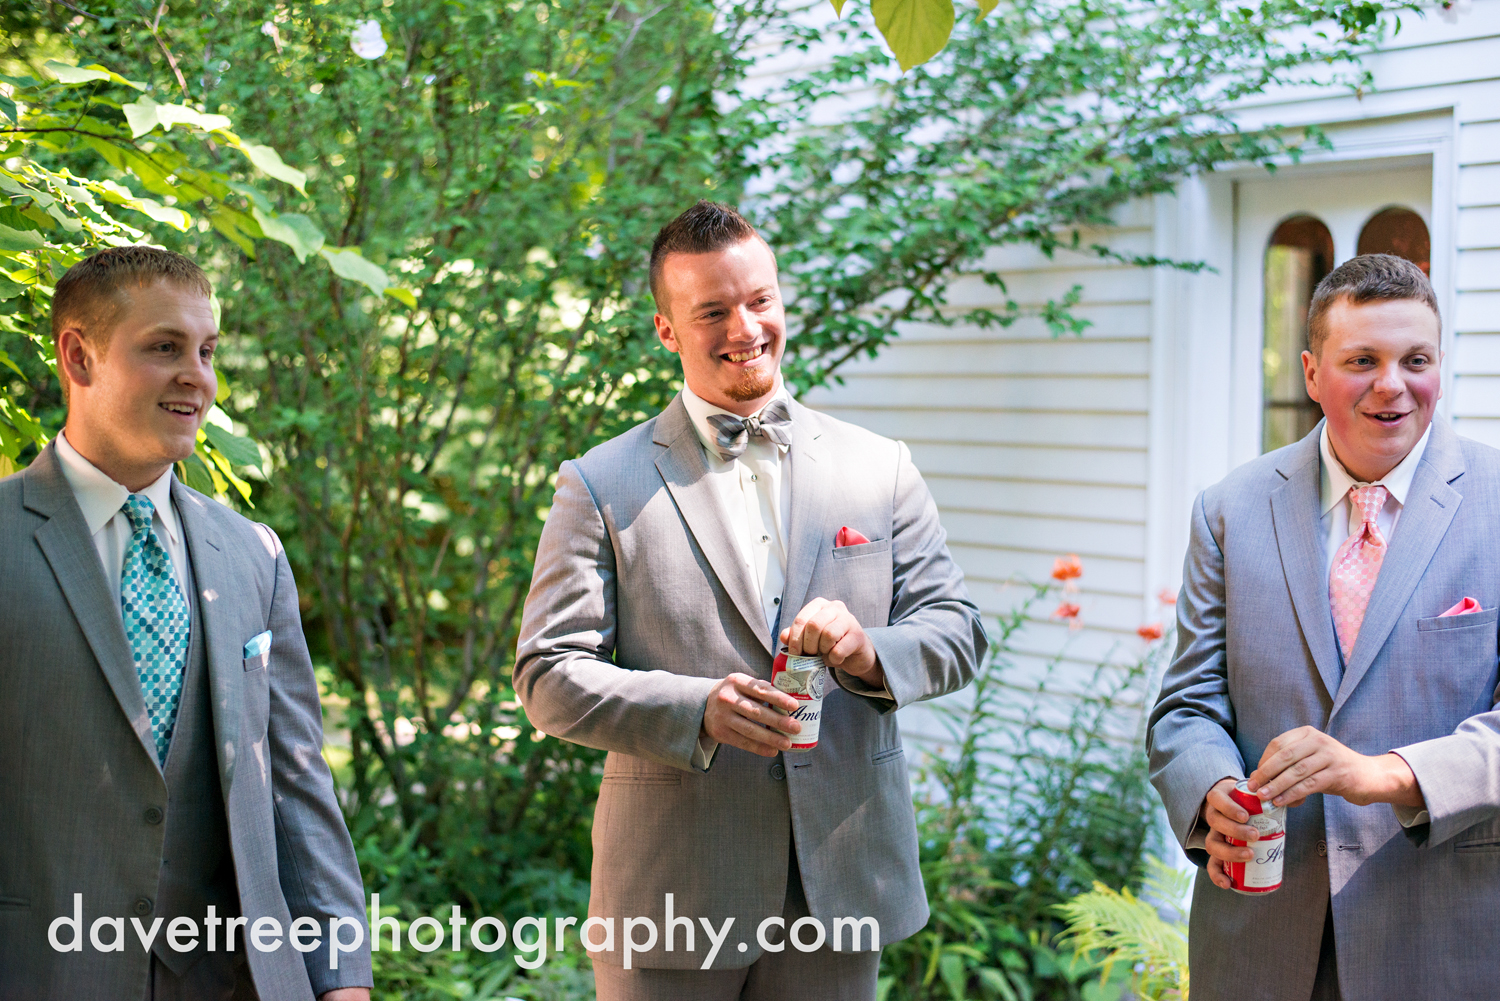 veranda_wedding_photographer_st_joseph_wedding_103.jpg